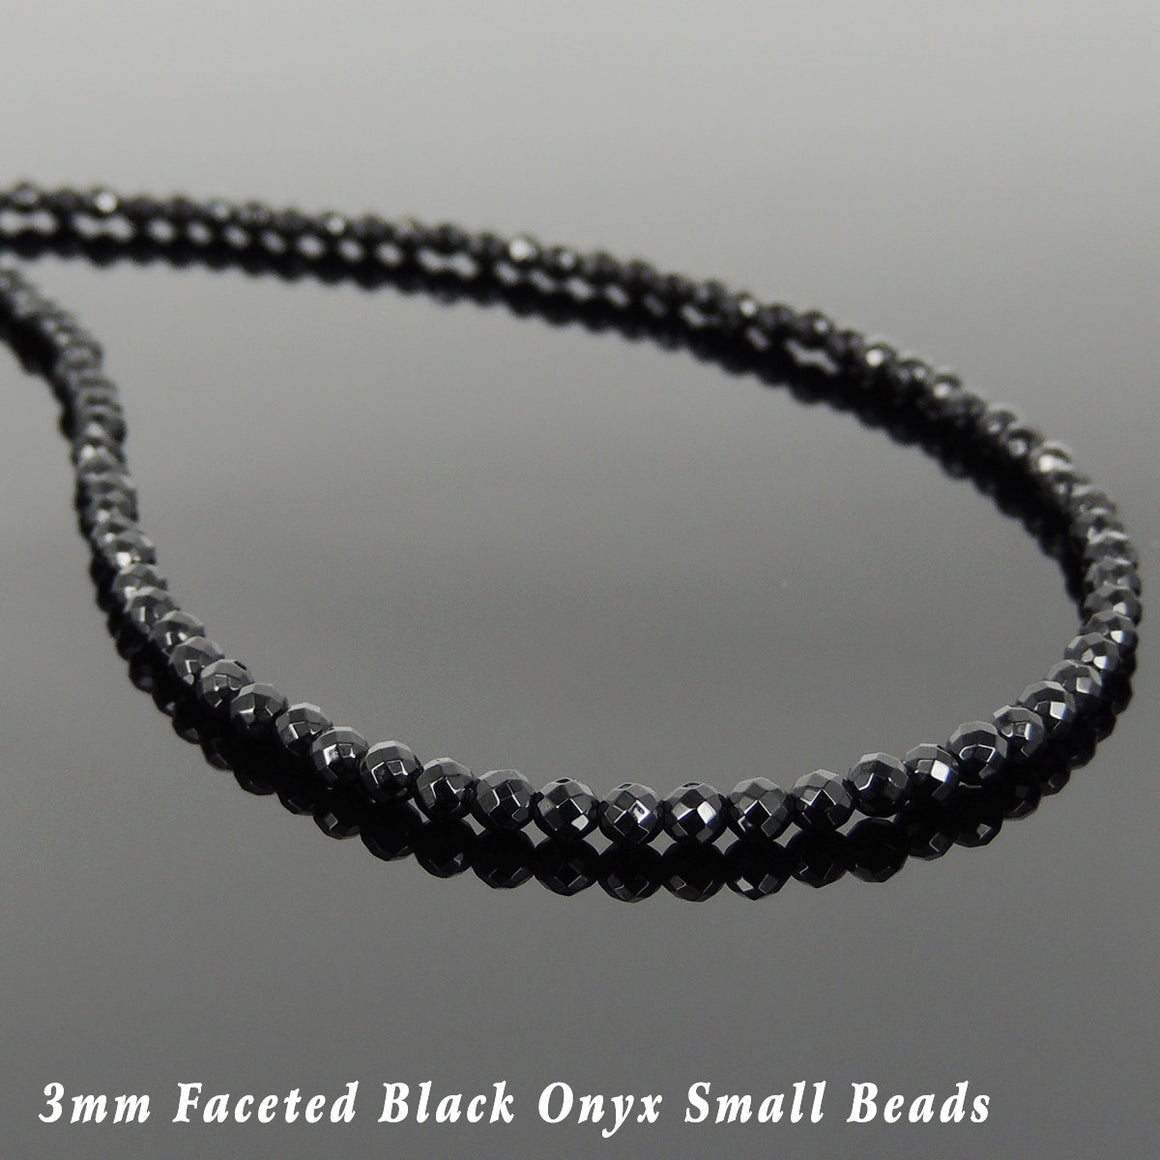 3mm Faceted Bright Black Onyx Healing Gemstone Necklace with S925 Sterling Silver Spacer Beads & Clasp - Handmade by Gem & Silver NK136